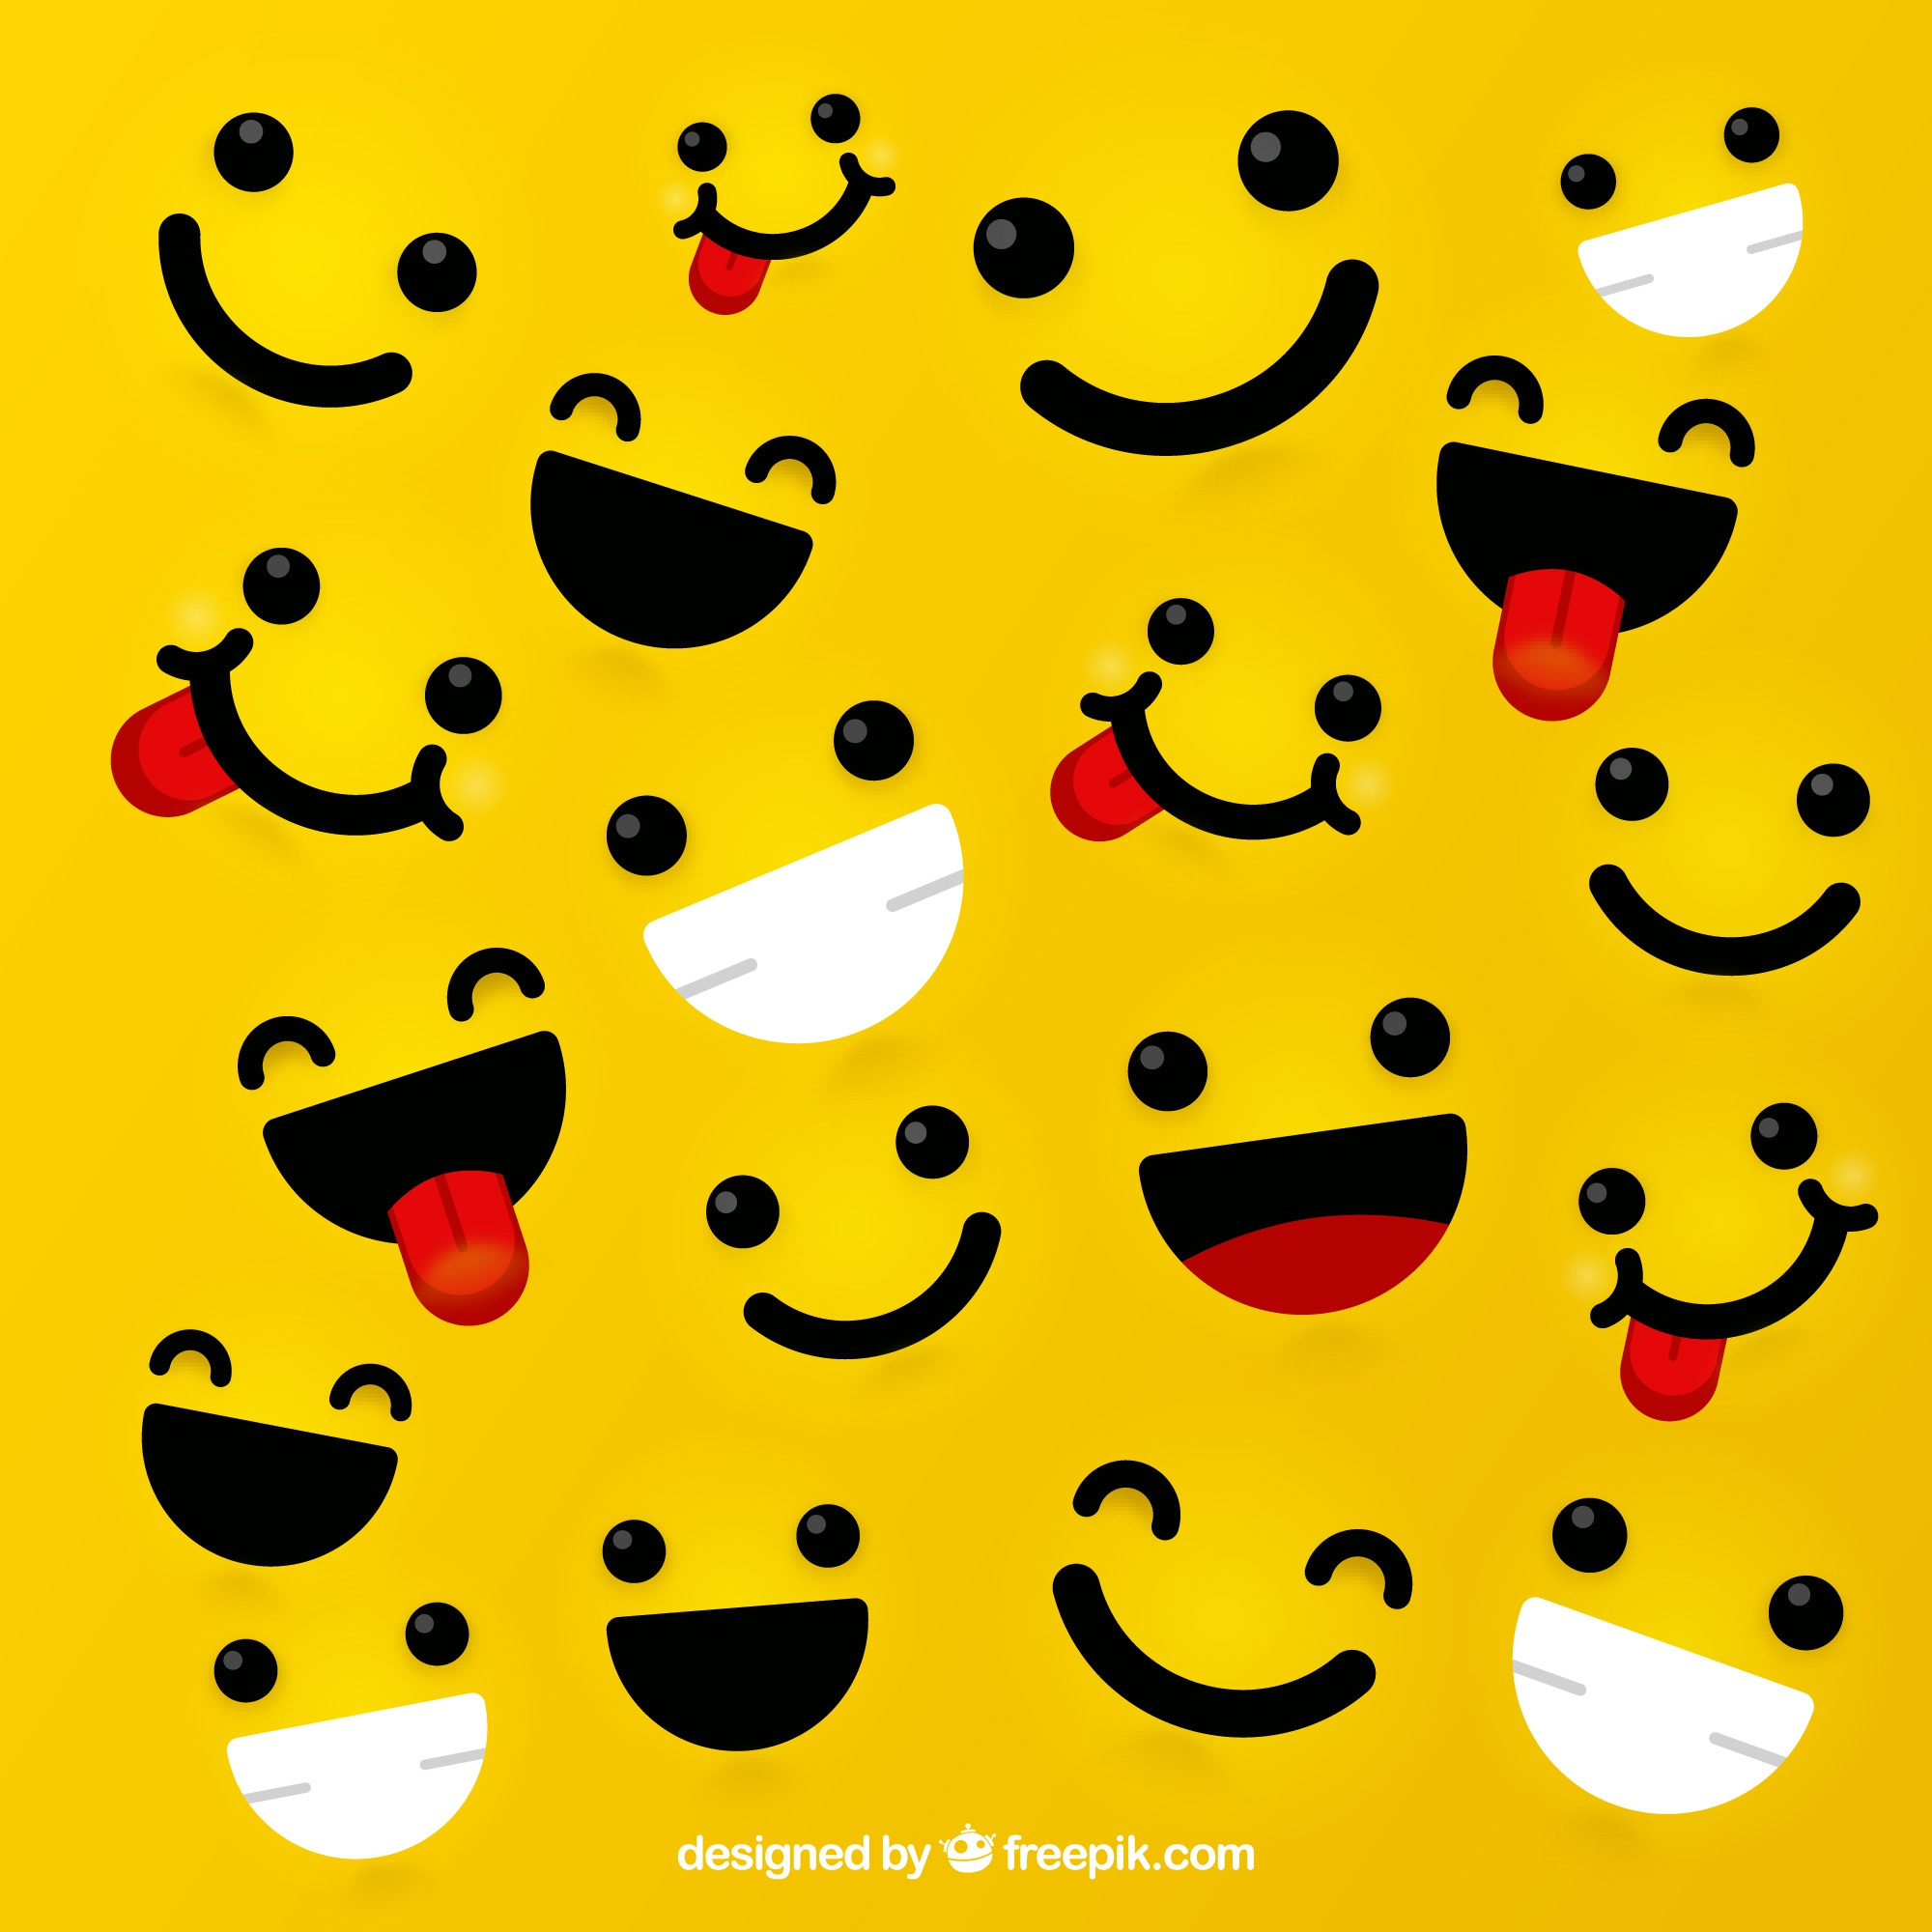 smile vectors  photos and psd files free download smiley face vector images smiley face vector free